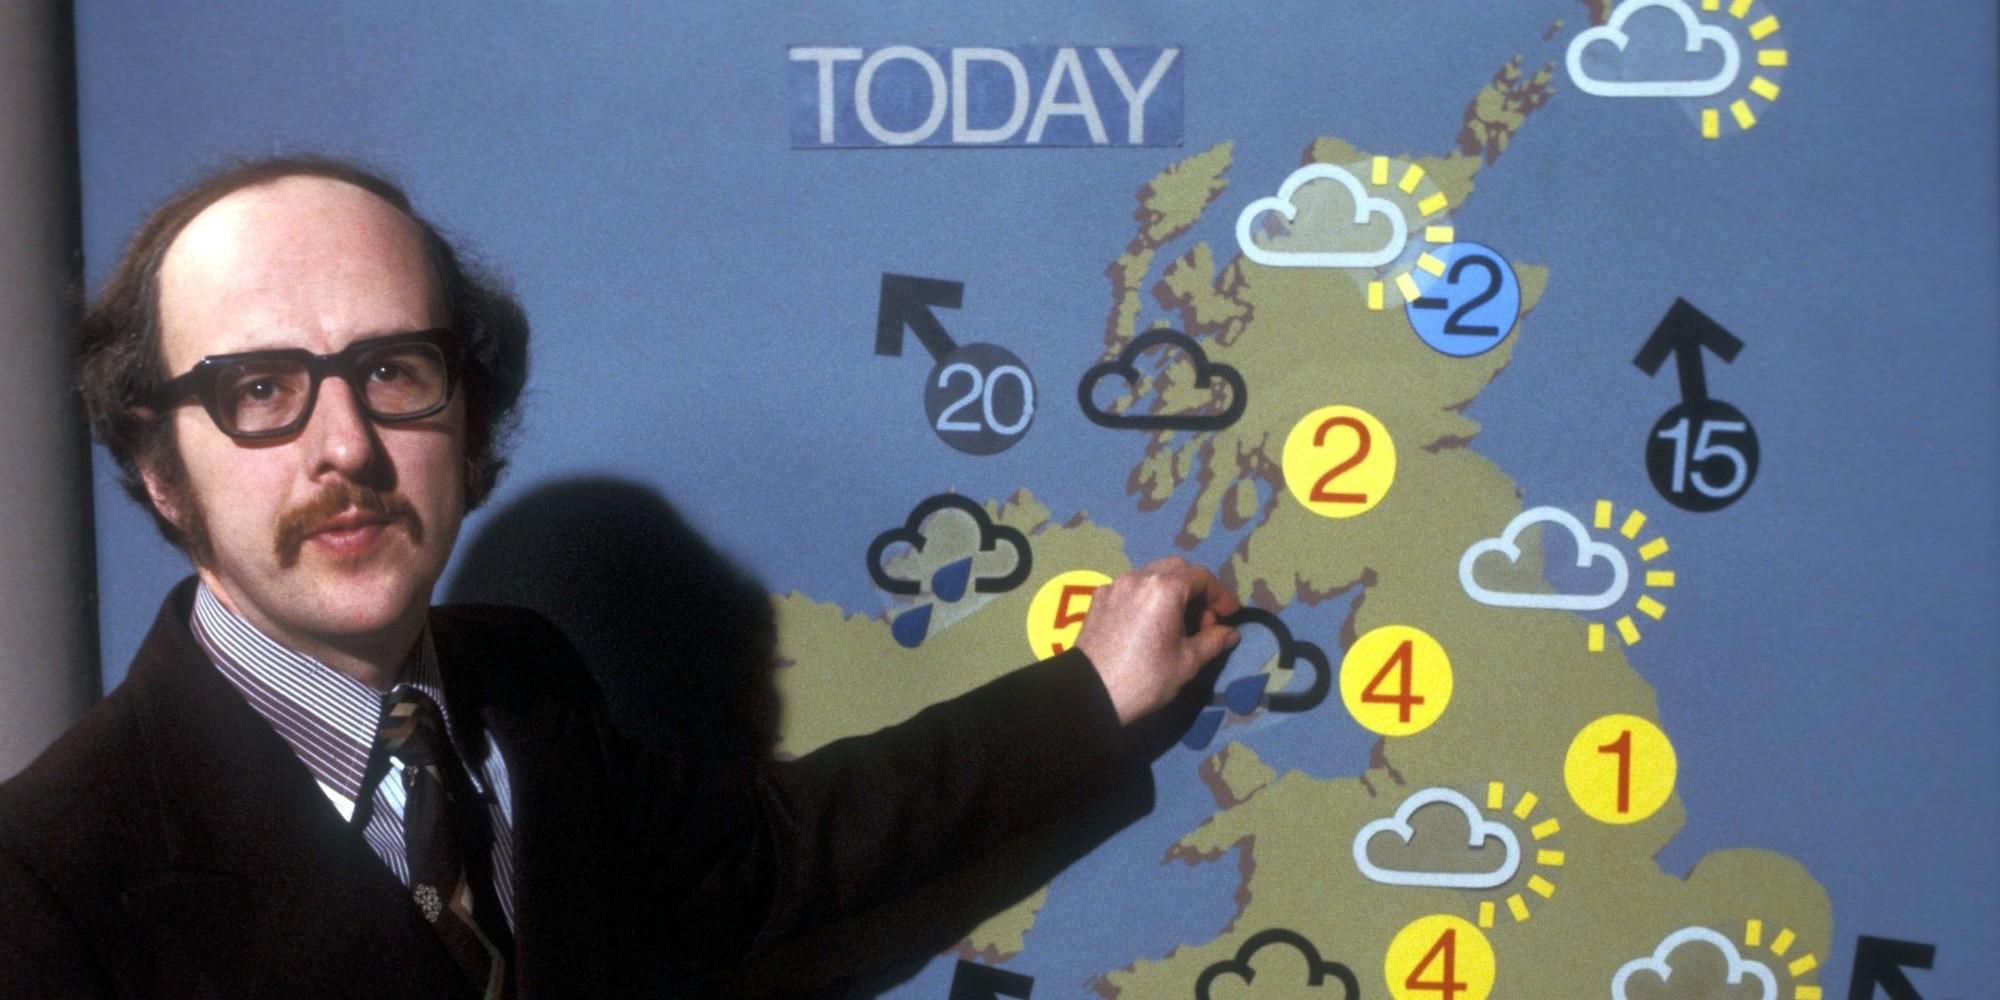 Bbc weather - Bbc Announces End Of Weather Forecasts By Met Office After Nearly A Century How Many Can You Name Huffpost Uk